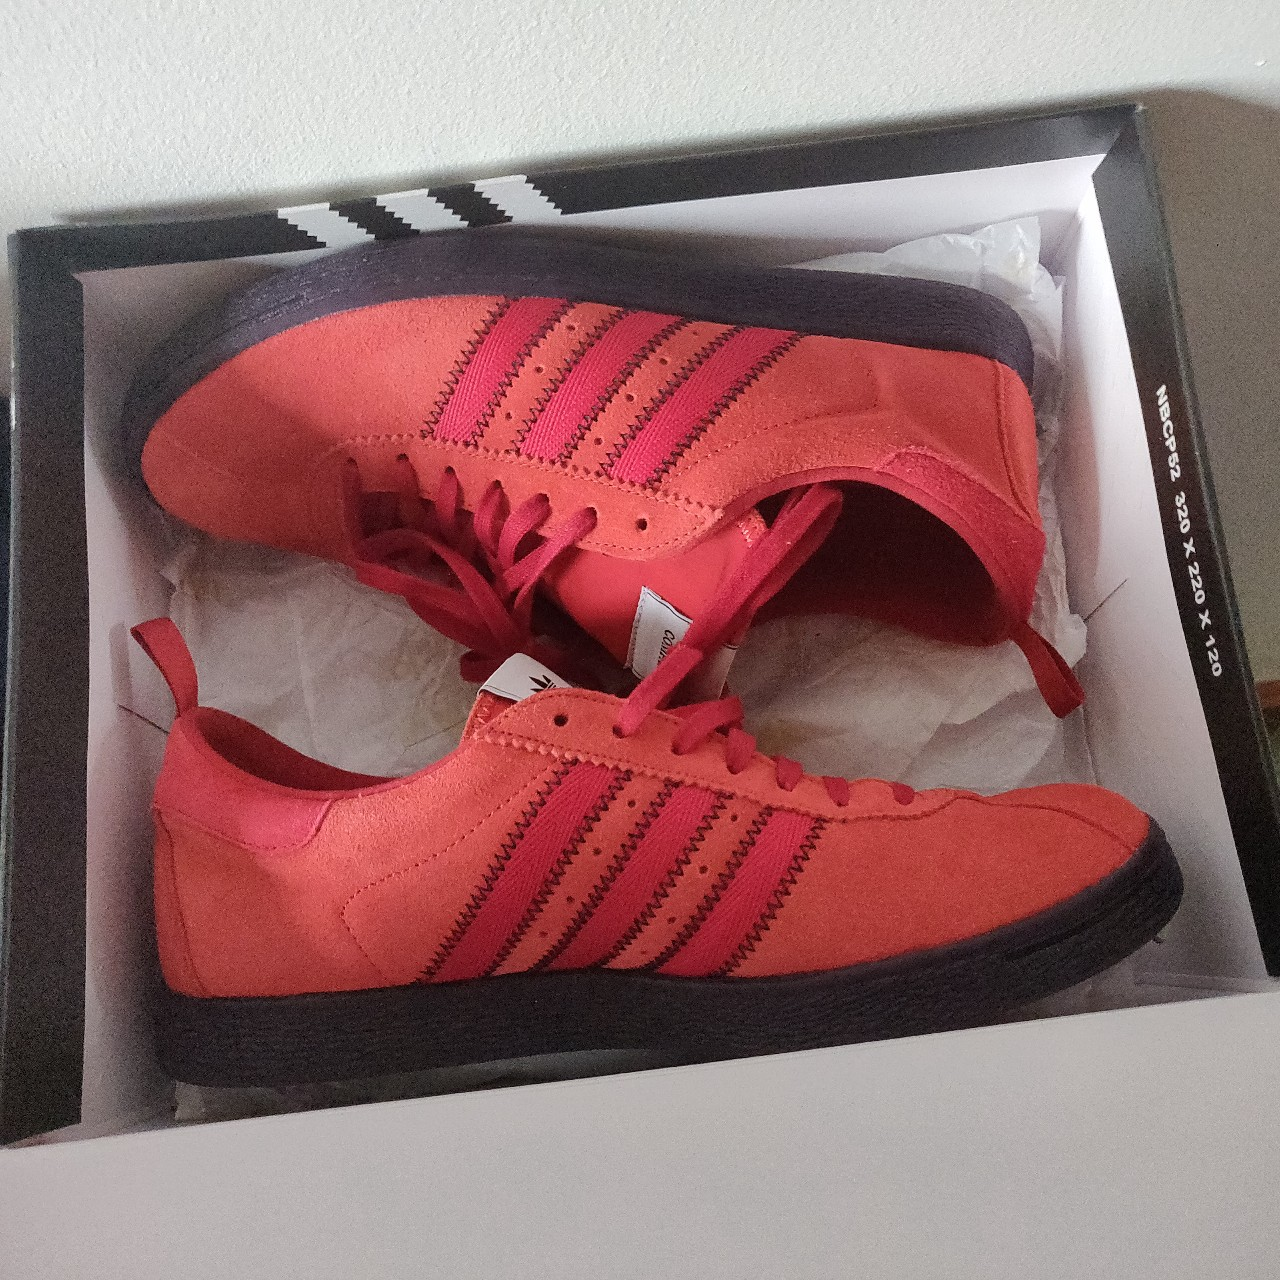 Adidas x C.P Company Tobacco trainers, untagged but